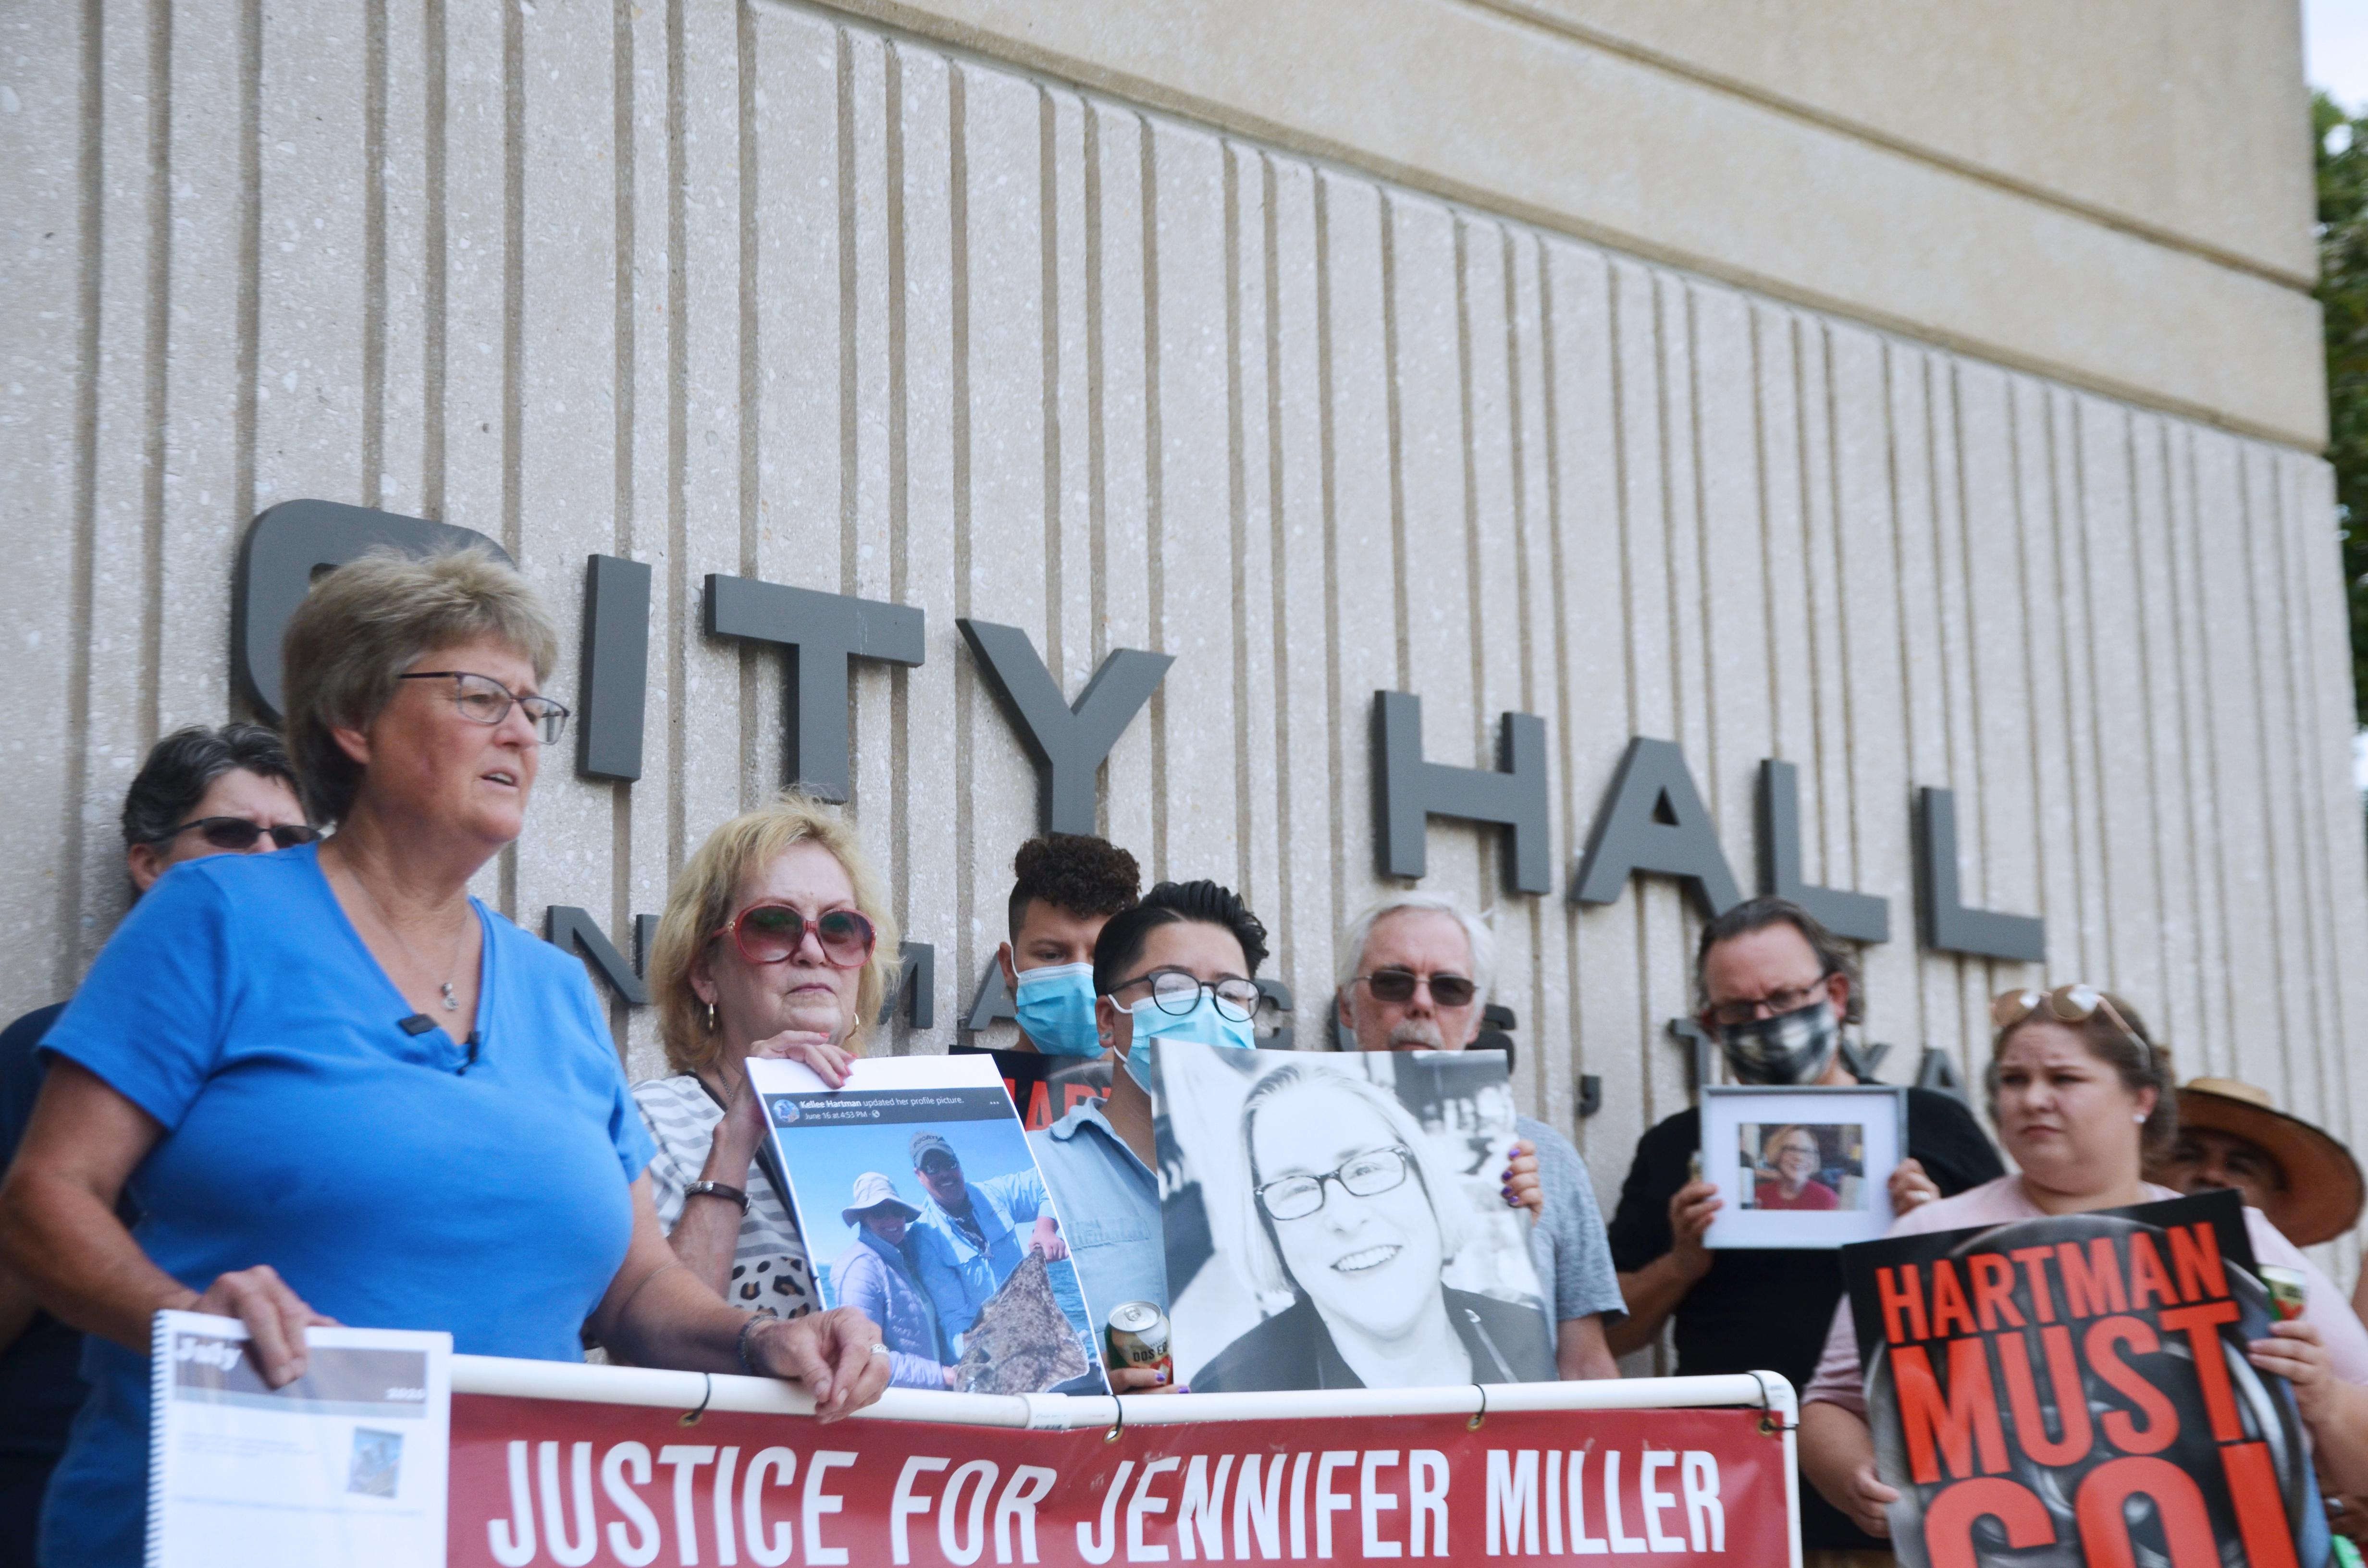 Justice for Jennifer pleas continue as friends, family protest Wednesday